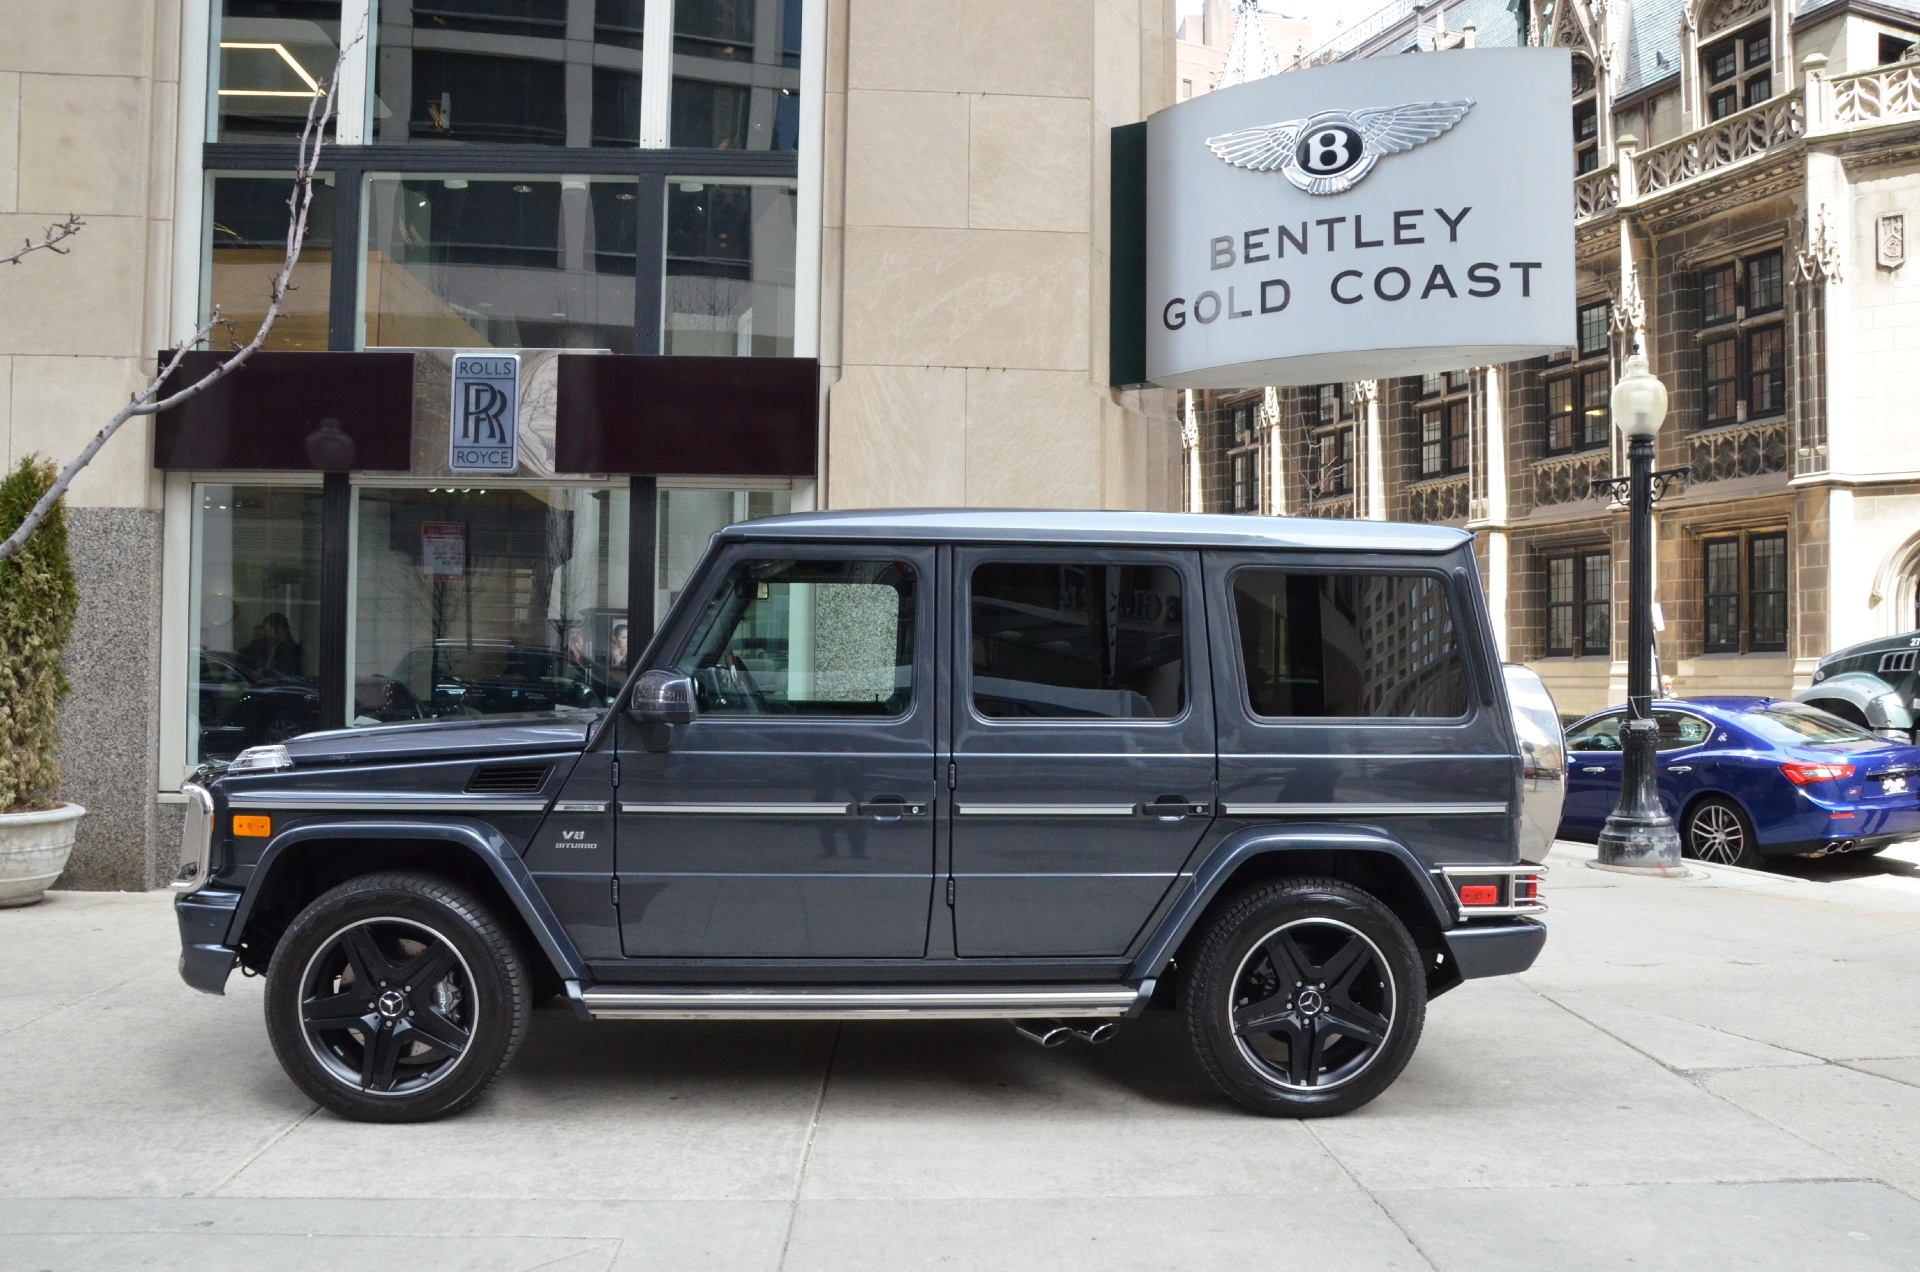 2013 mercedes benz g class g63 amg stock 00848 for sale for Mercedes benz g63 amg 2013 price